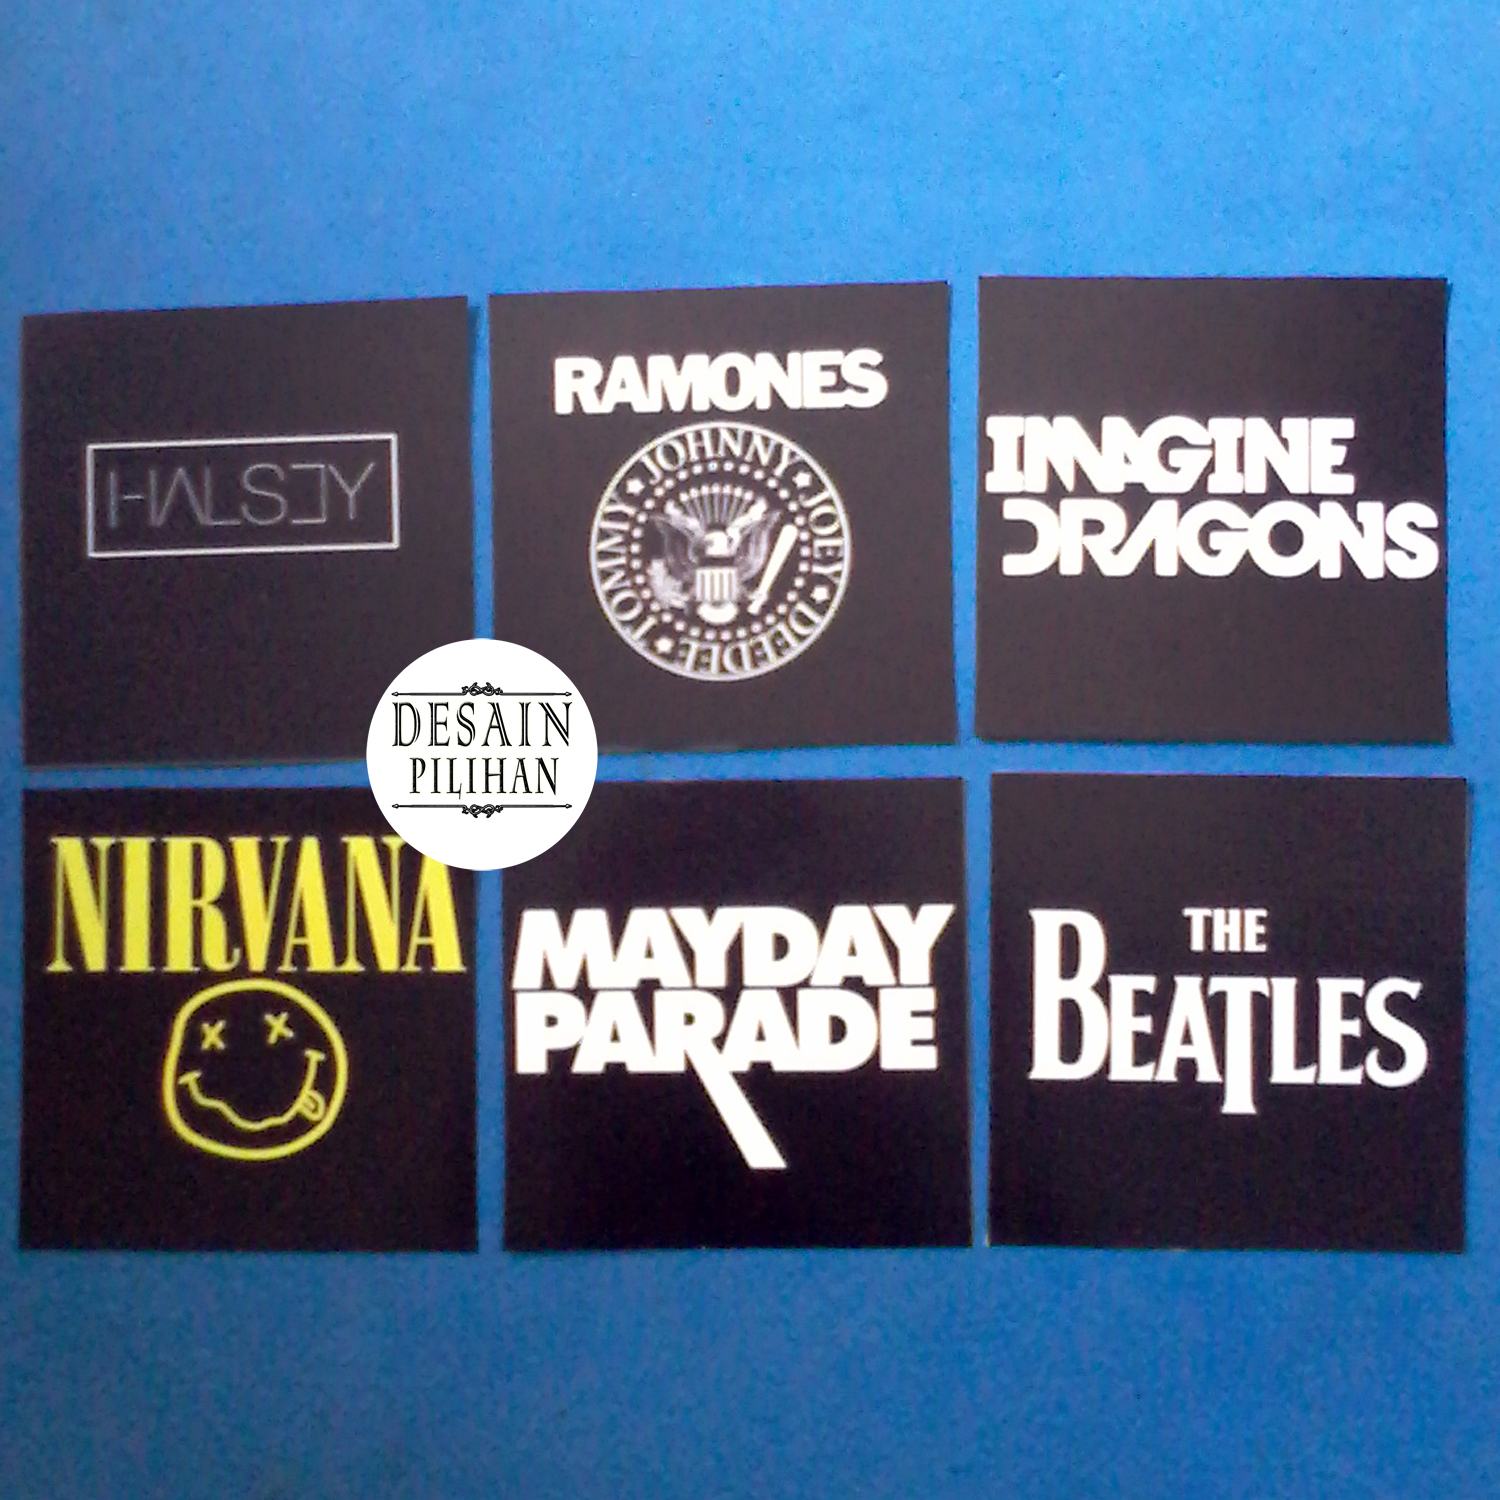 POSTER MINI REQUEST SIZE (THE BEATLES, MAYDAY PARADE, NIRVANA, DRAGONS, RAMONES)